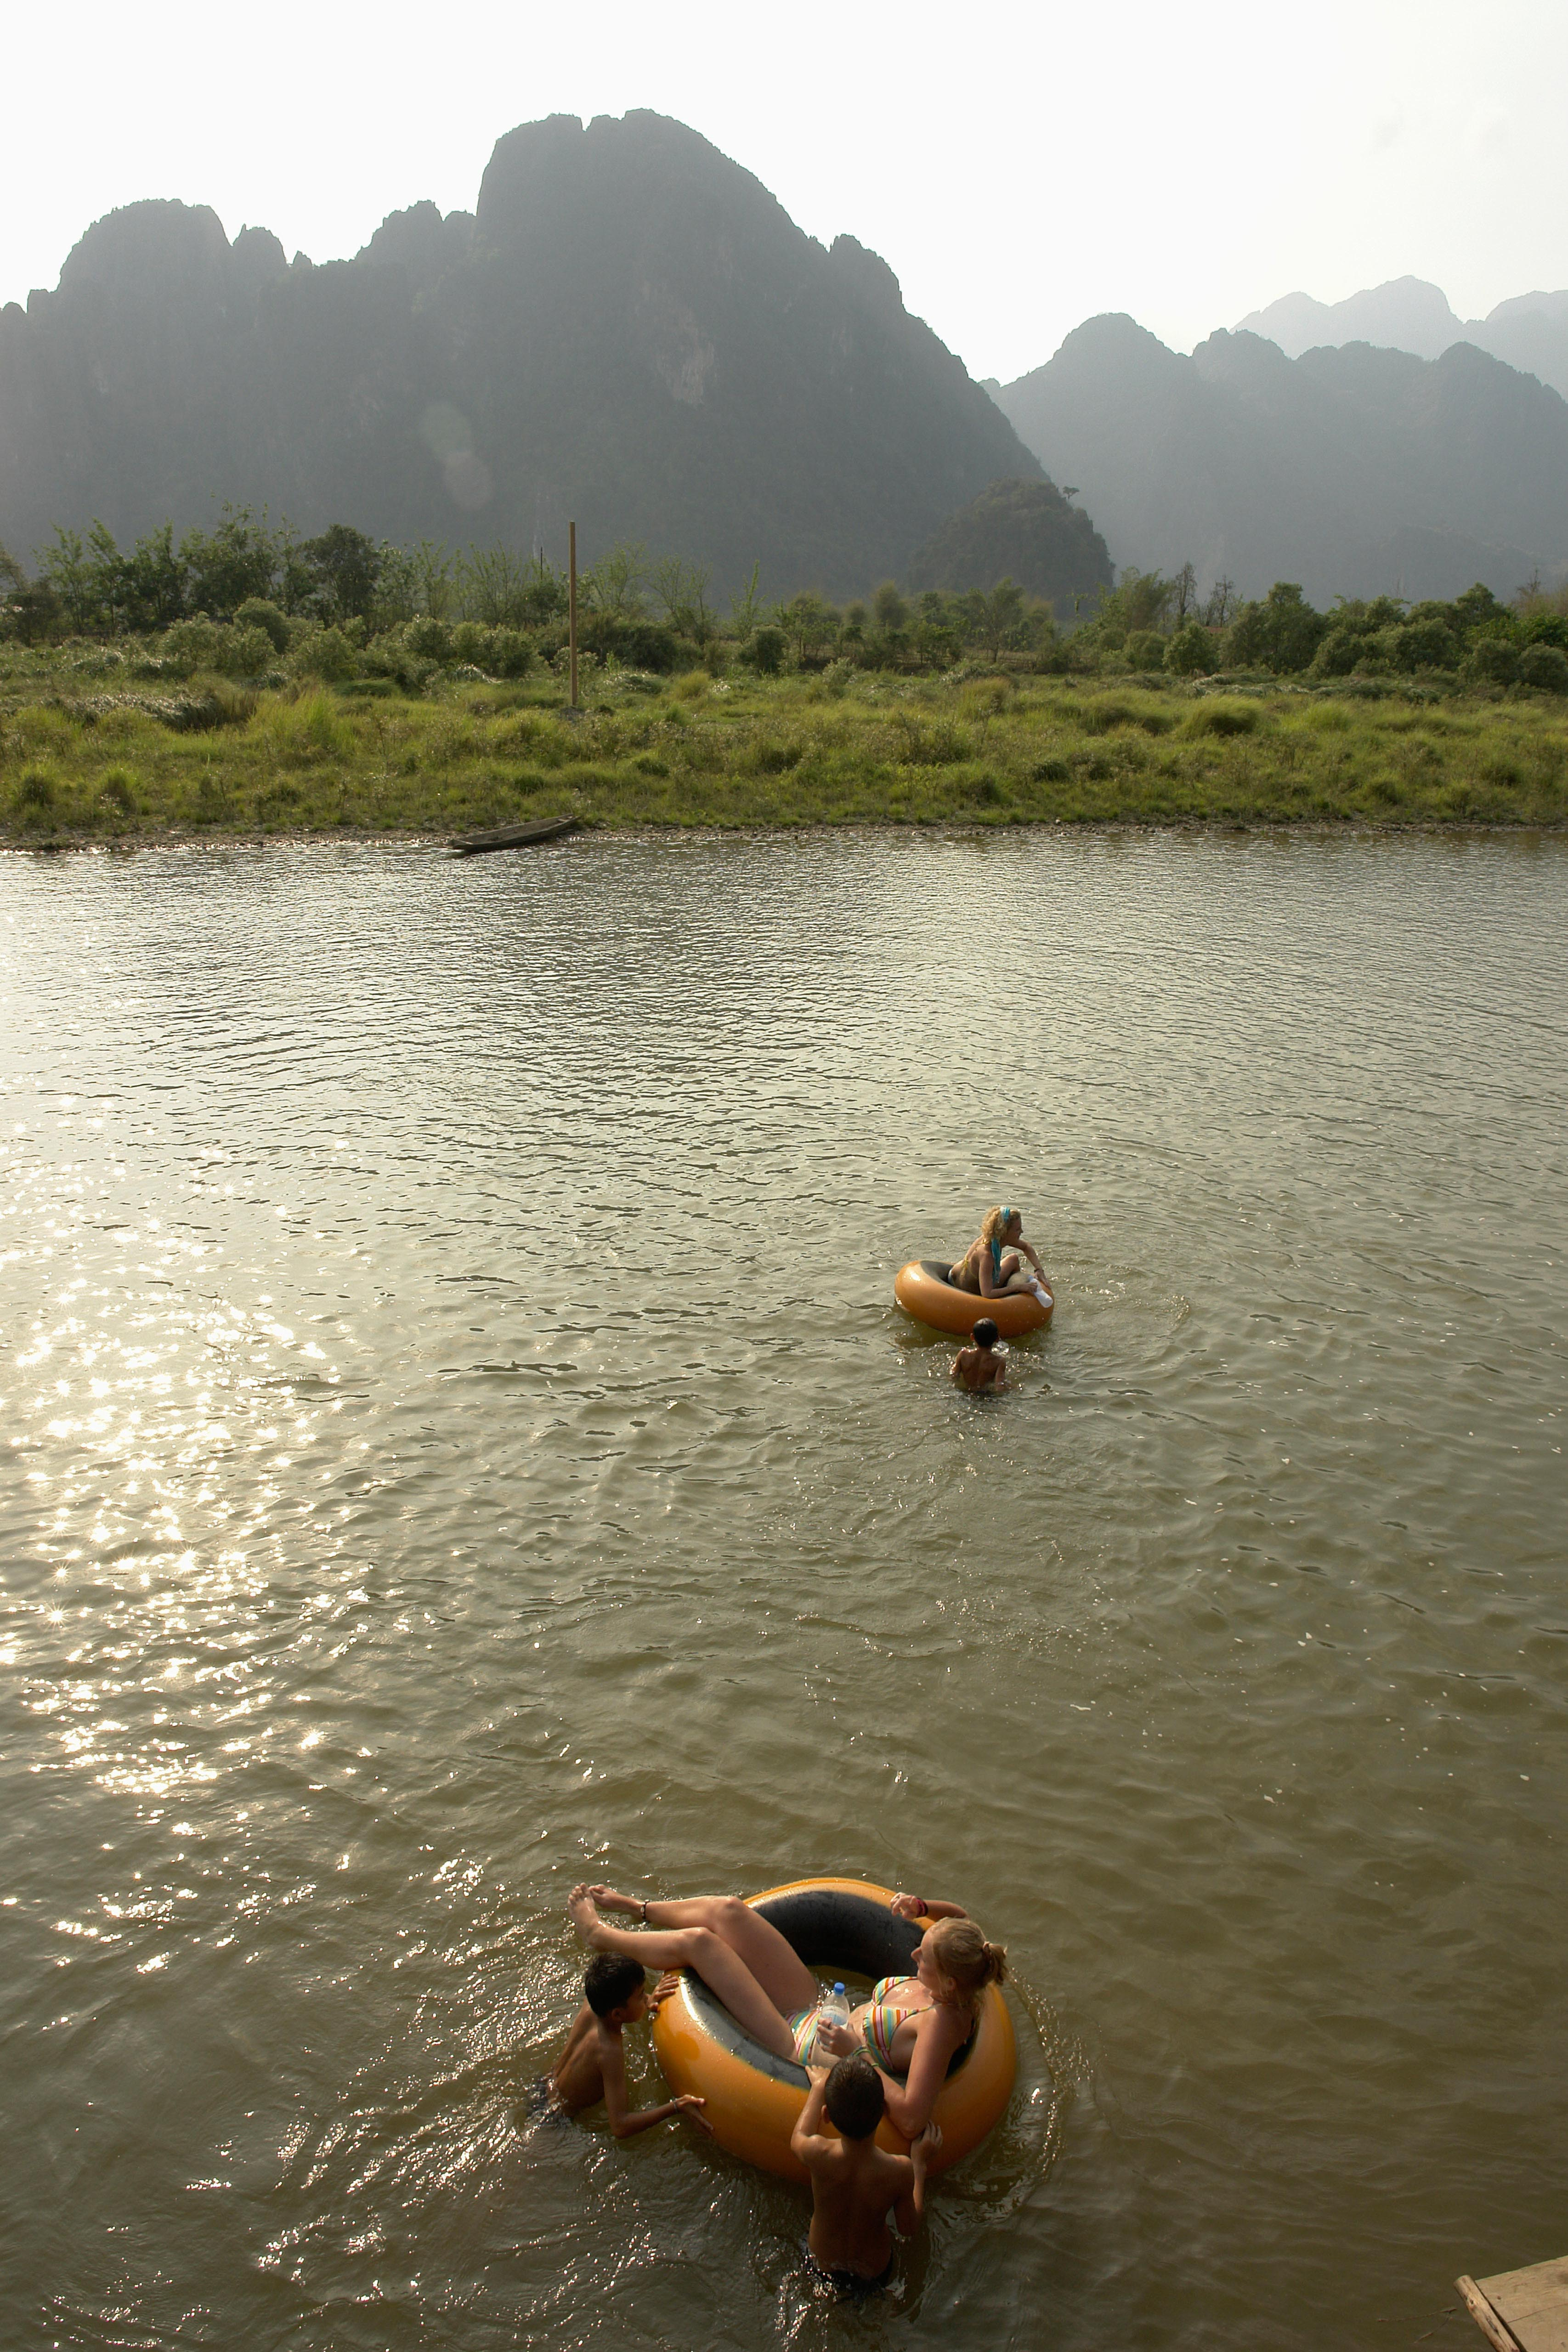 Painet jf5696 laos tourists tubing down nam ngung river vang vieng asia se transport tourism country developing nation less